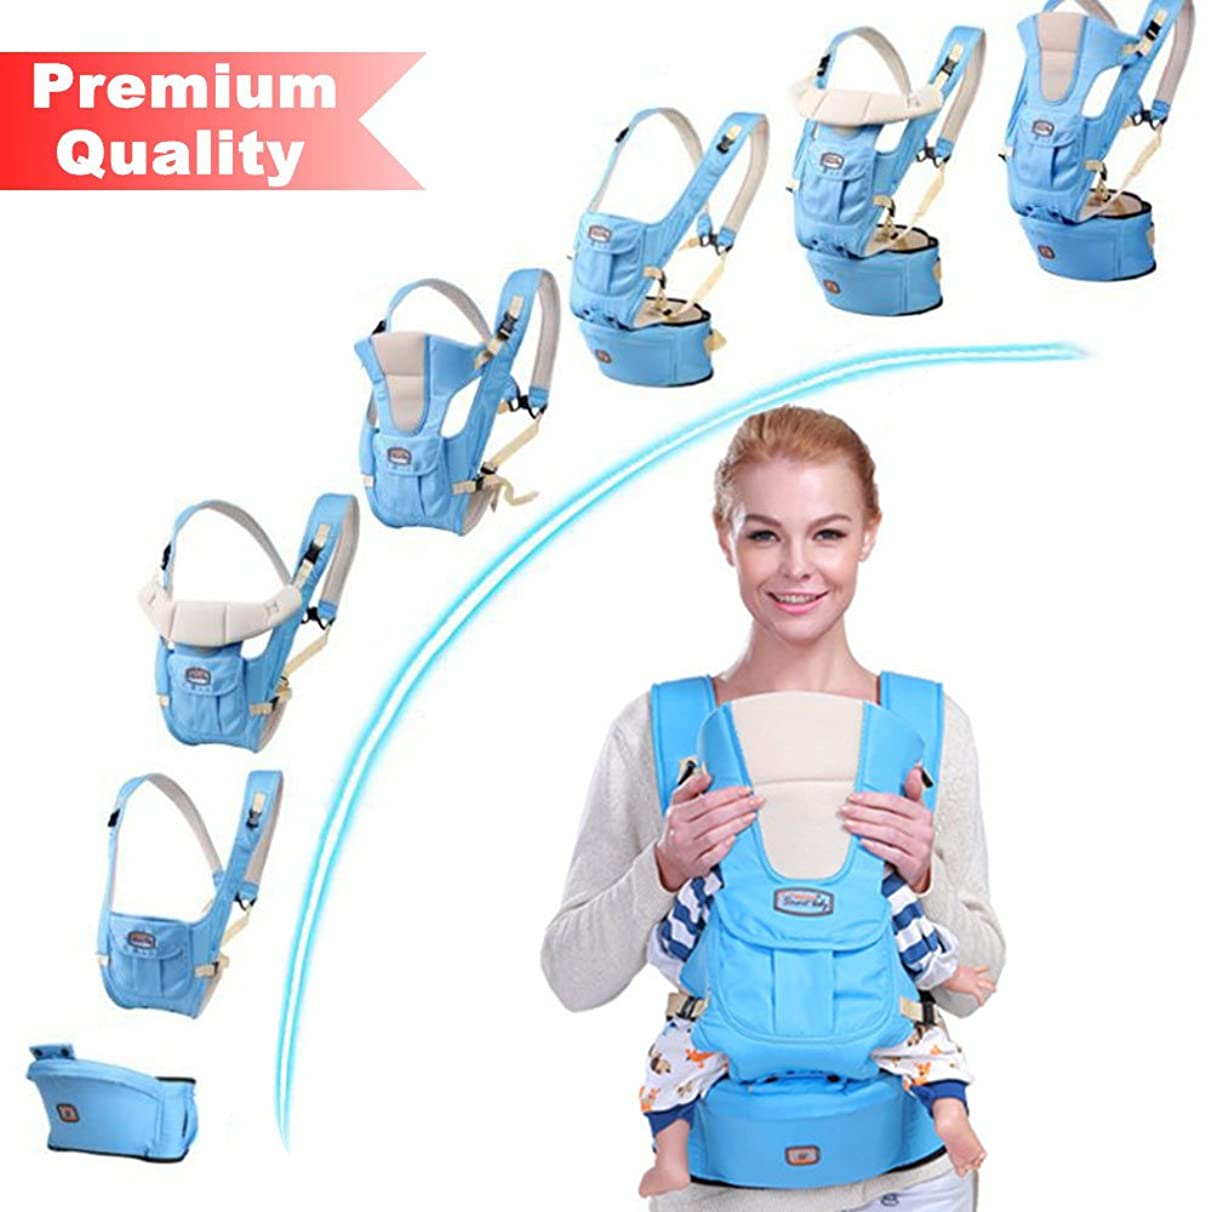 Aolander Baby Carrier with Hip SEAT for 0-36 Months Ergonomic Baby Carrier Hiking Backpack Up to 50 Pounds Adjustable Pink and Blue Baby Carrier with Large Pocket 4 Positions for Infant Toddler